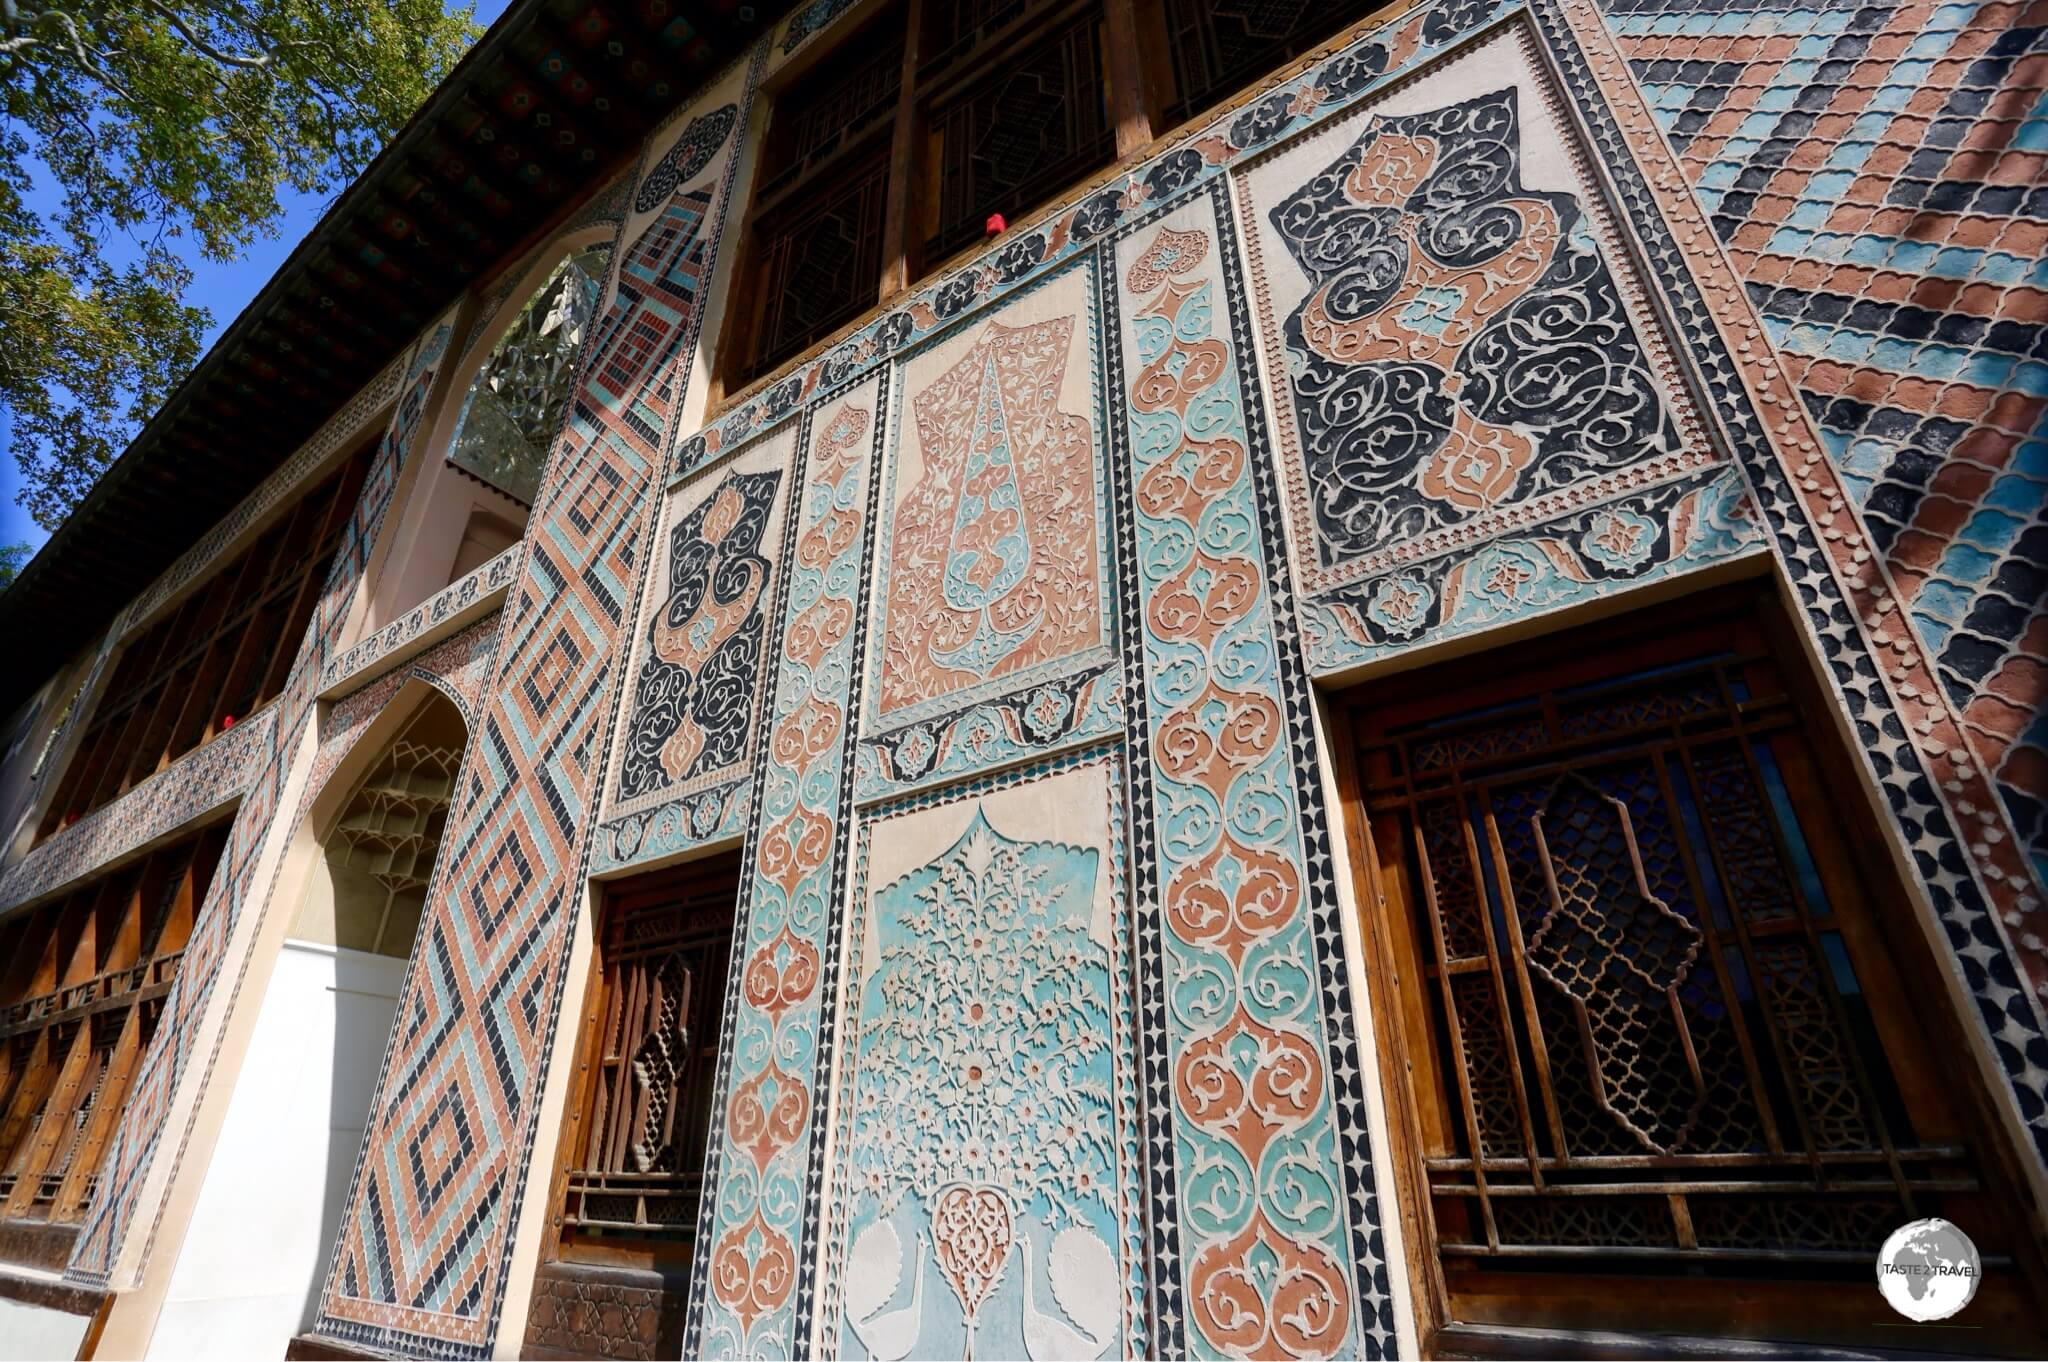 The exterior of the Palace of the Sheki Khans – photos are not allowed inside.